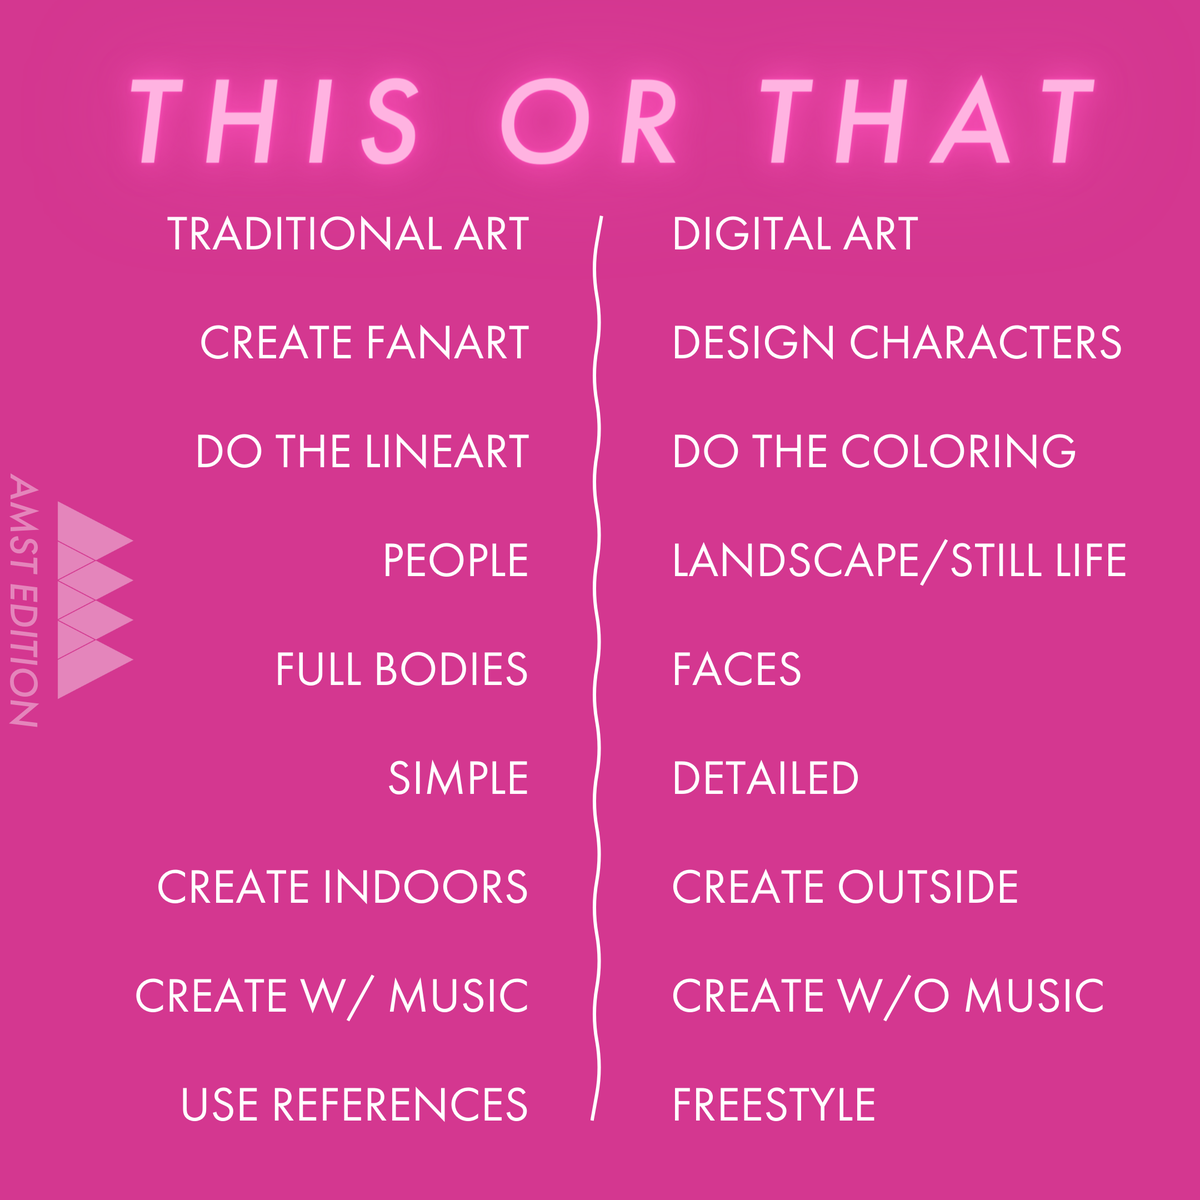 THIS or THAT? Tag us in your stories/retweet & tag a friend to play along too! #AMSTactivities #thisorthat #artmuseum #museumgames #museumfromhome #artathome #tagafriend #visitAMSTpic.twitter.com/WOCa3VaxaE